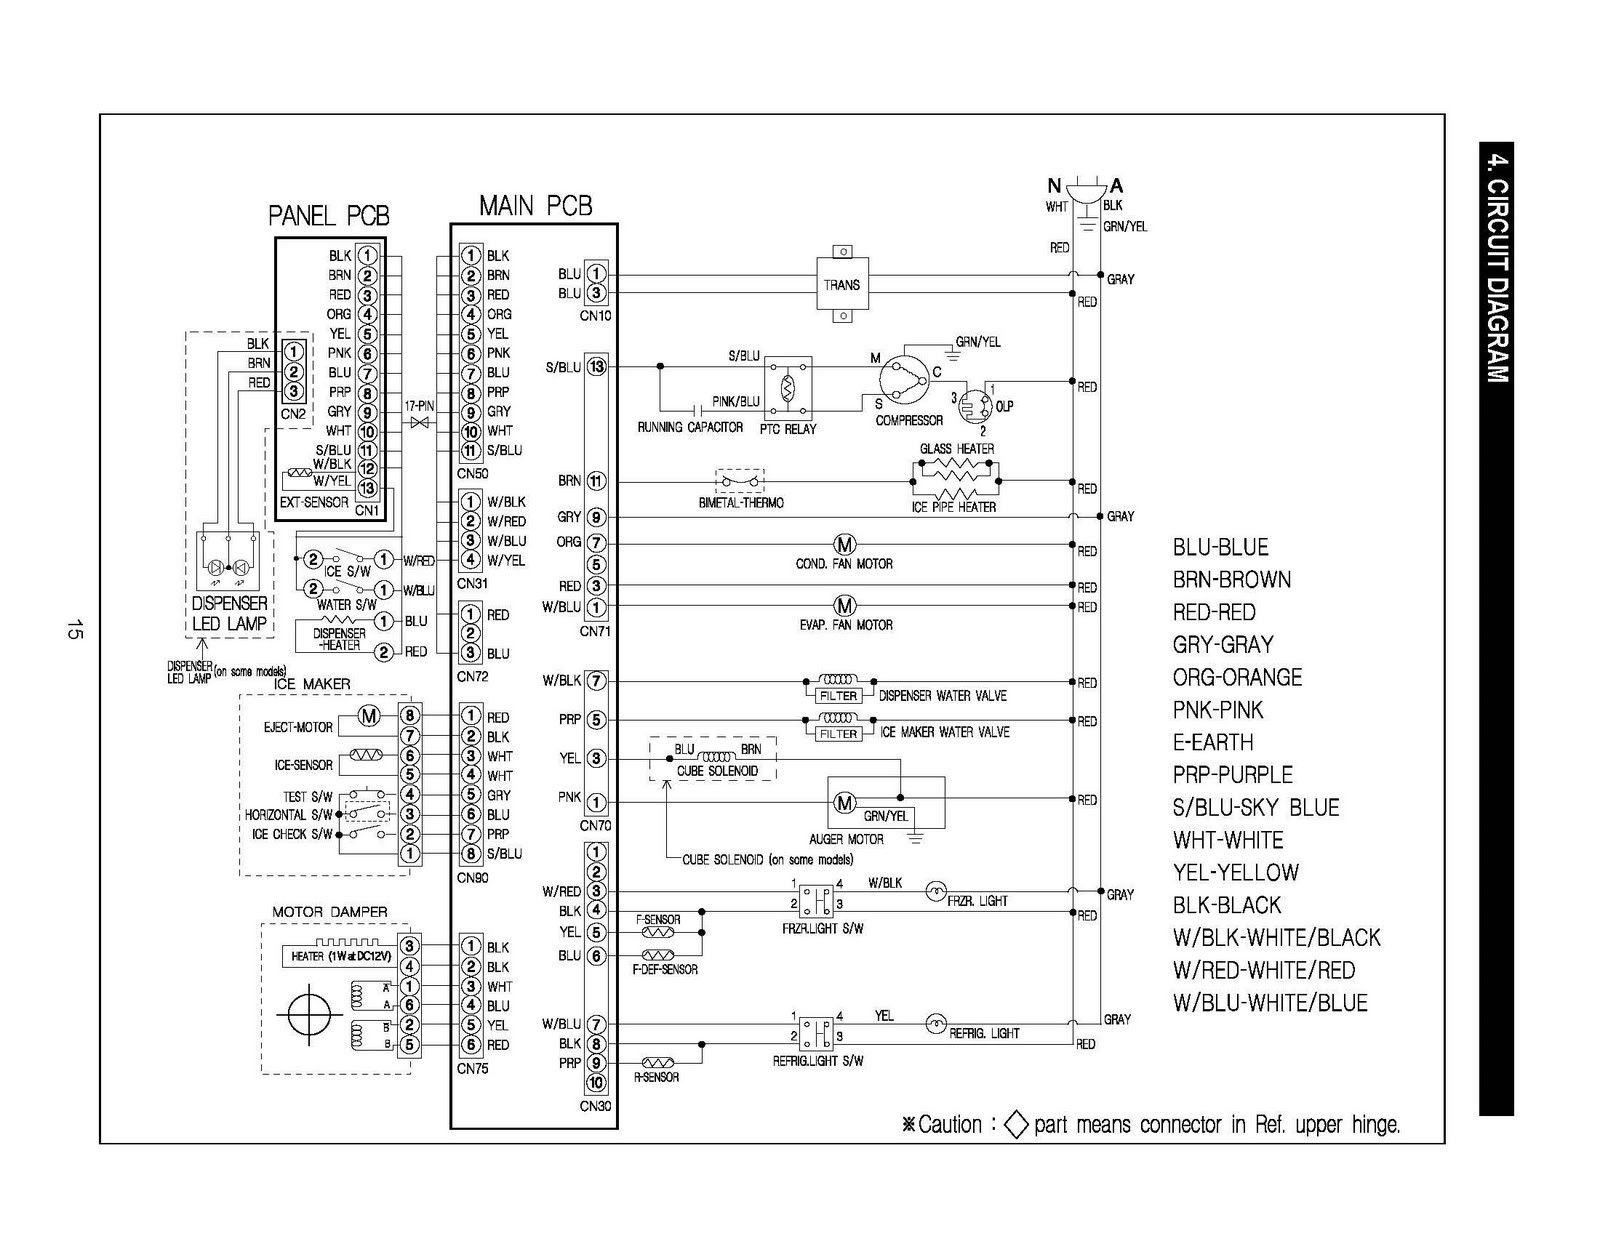 old refrigerator wiring diagram advance wiring diagram old refrigerator wiring diagram wiring diagram meta old ge refrigerator wiring diagram wiring diagram site old